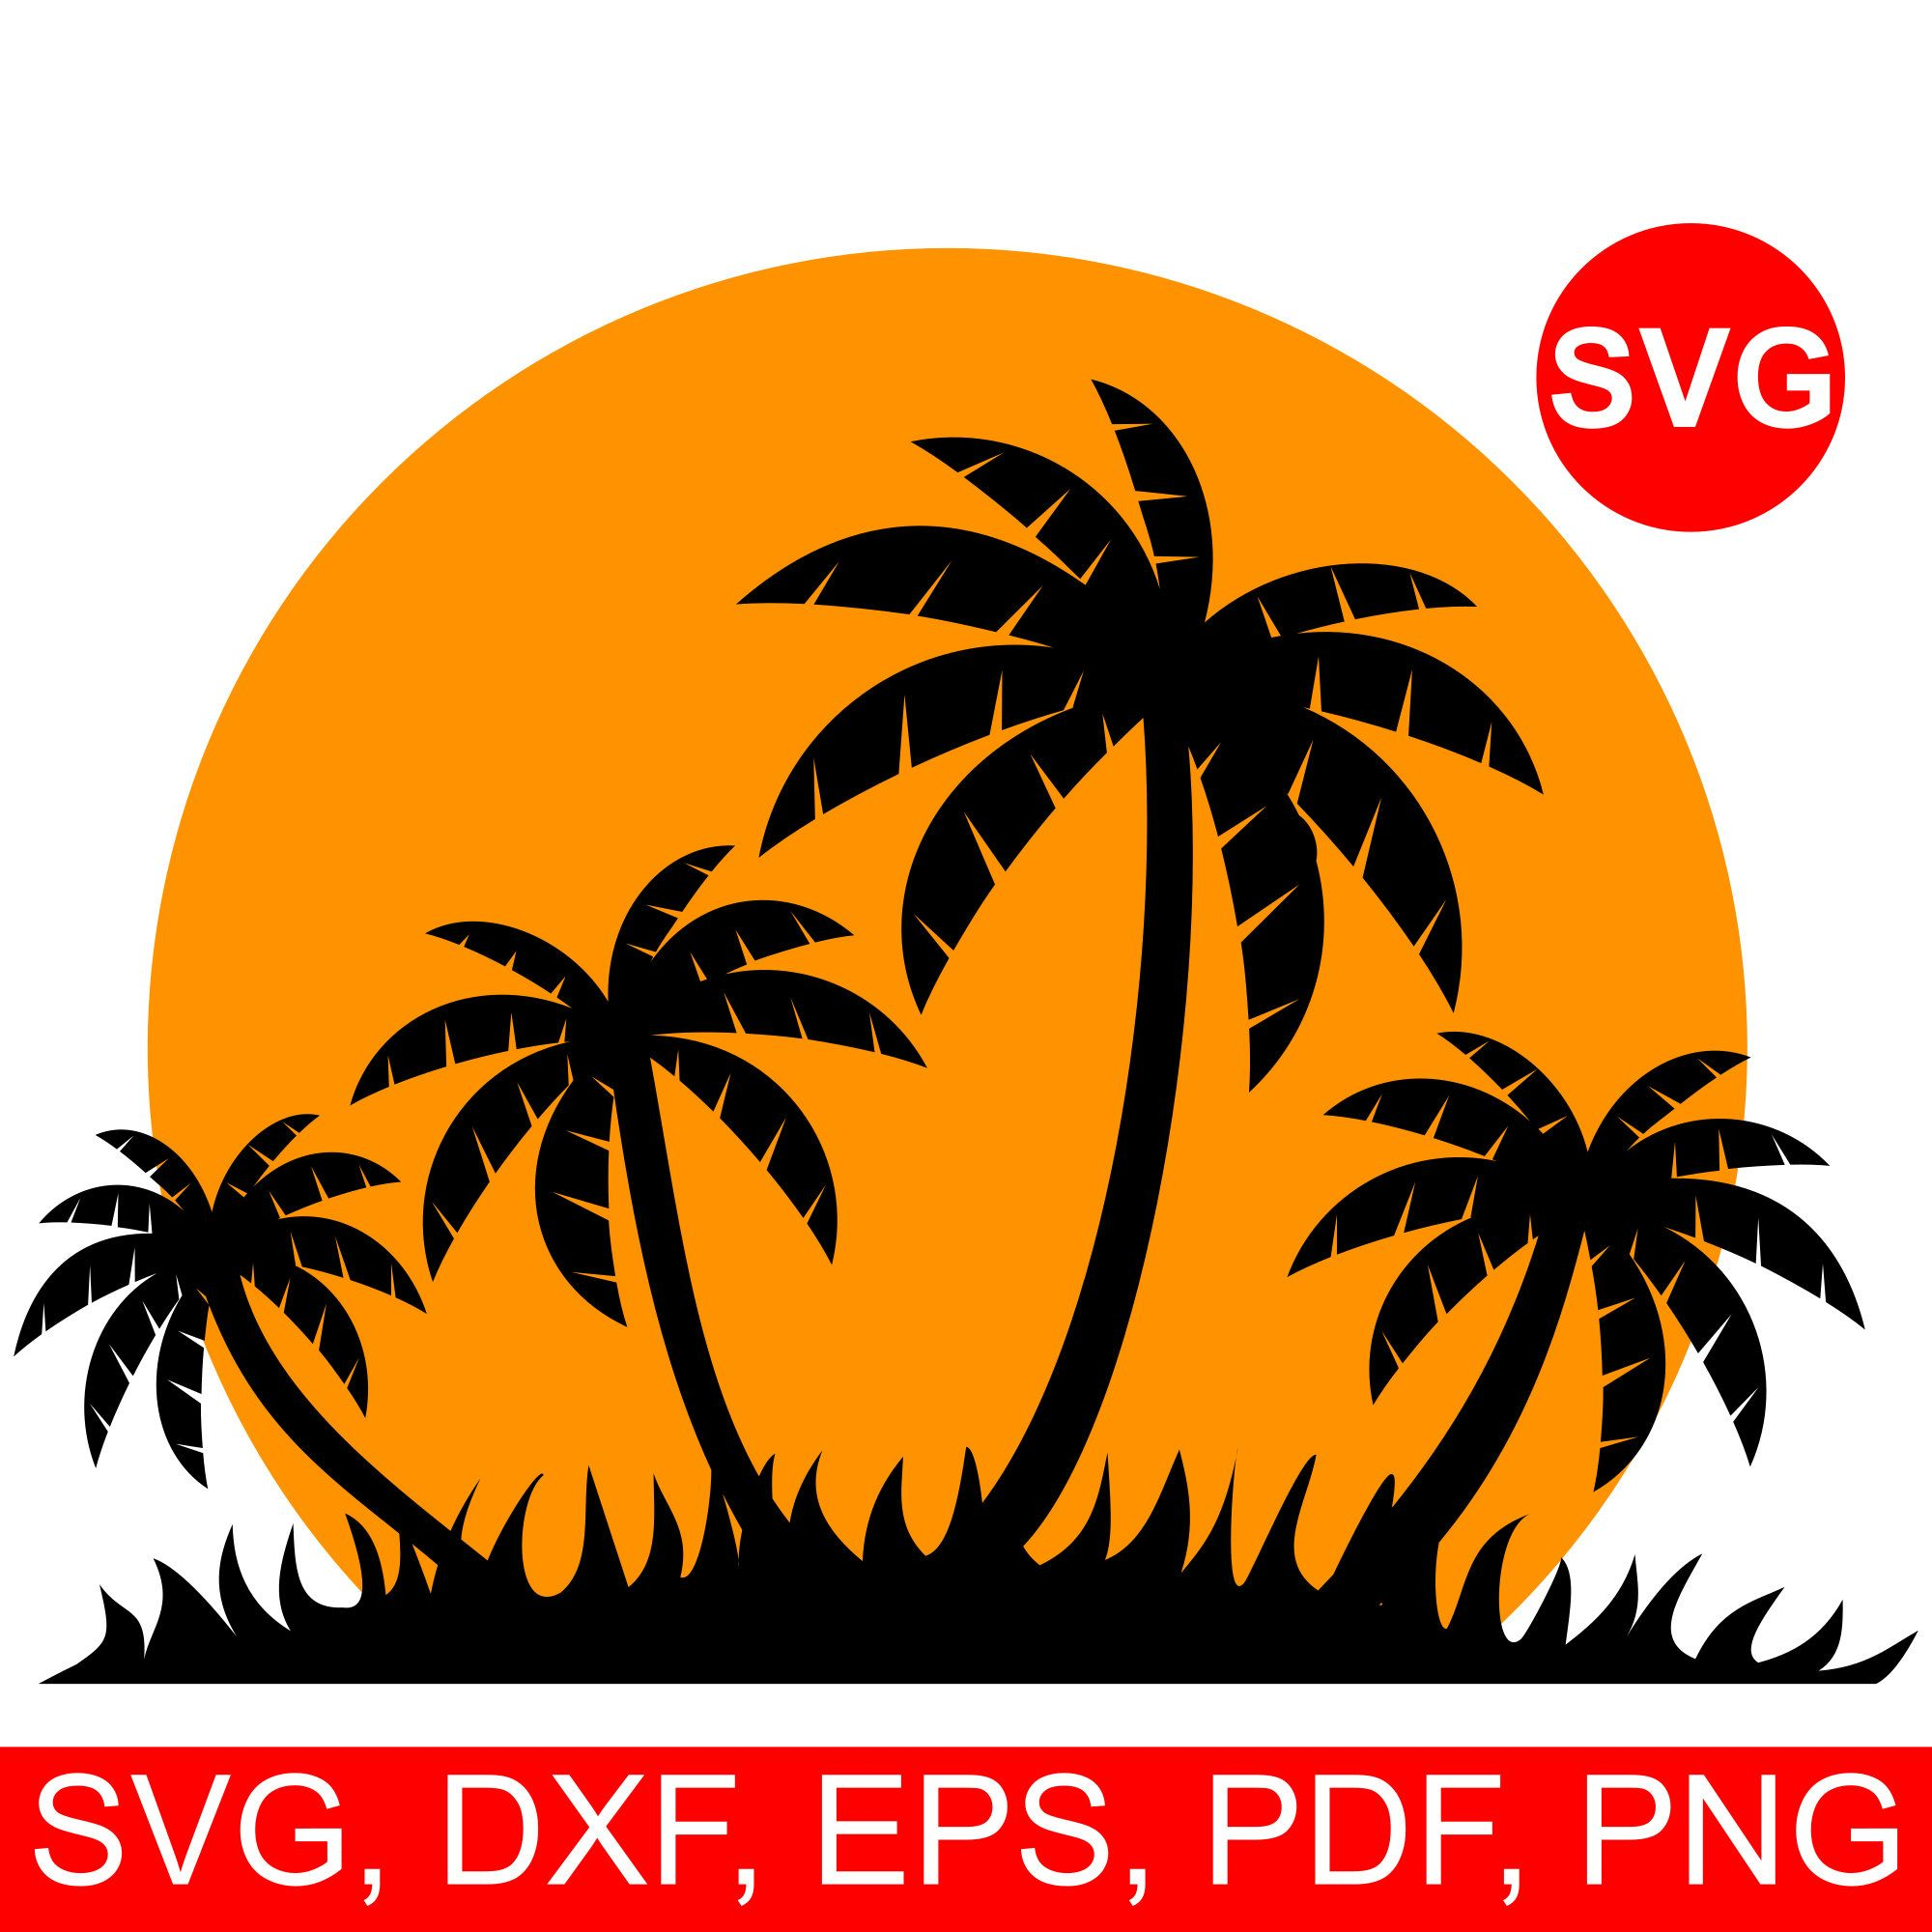 Life is good palm trees and sunset clipart vector black and white download Tropical Sunset SVG File for Cricut & Silhouette, paradise island ... vector black and white download